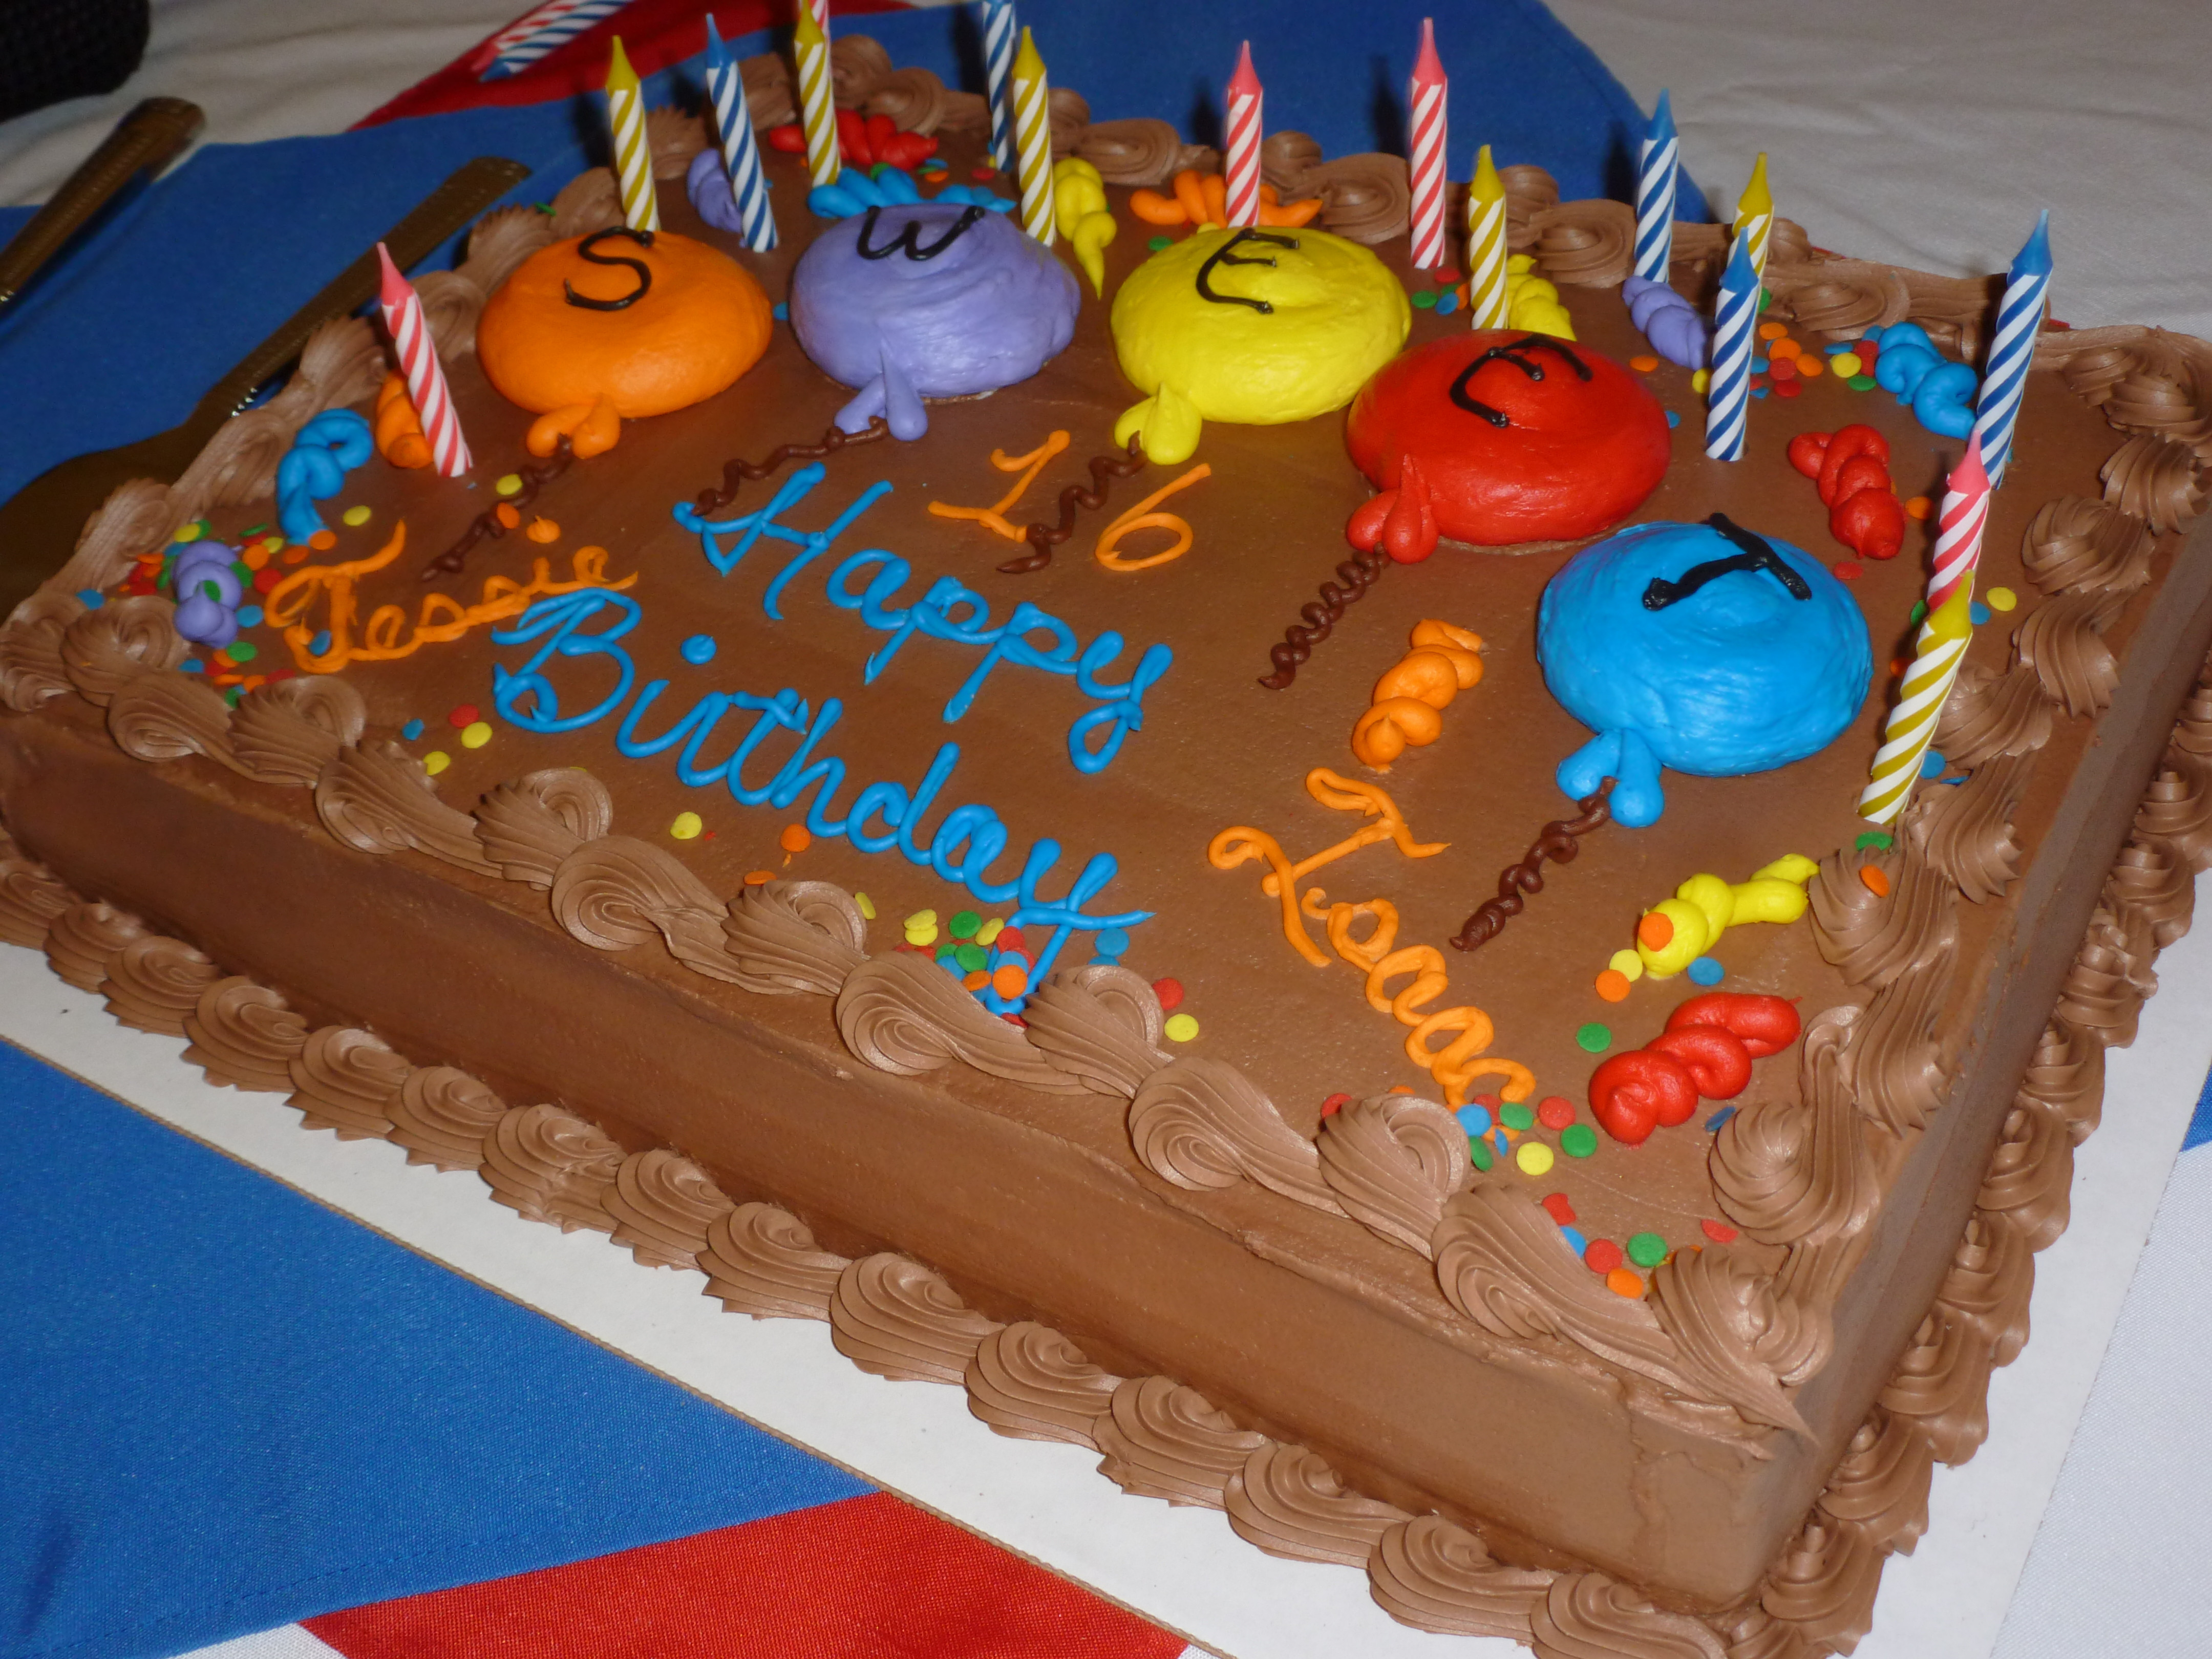 Best ideas about 16th Birthday Party . Save or Pin February 2013 Now.